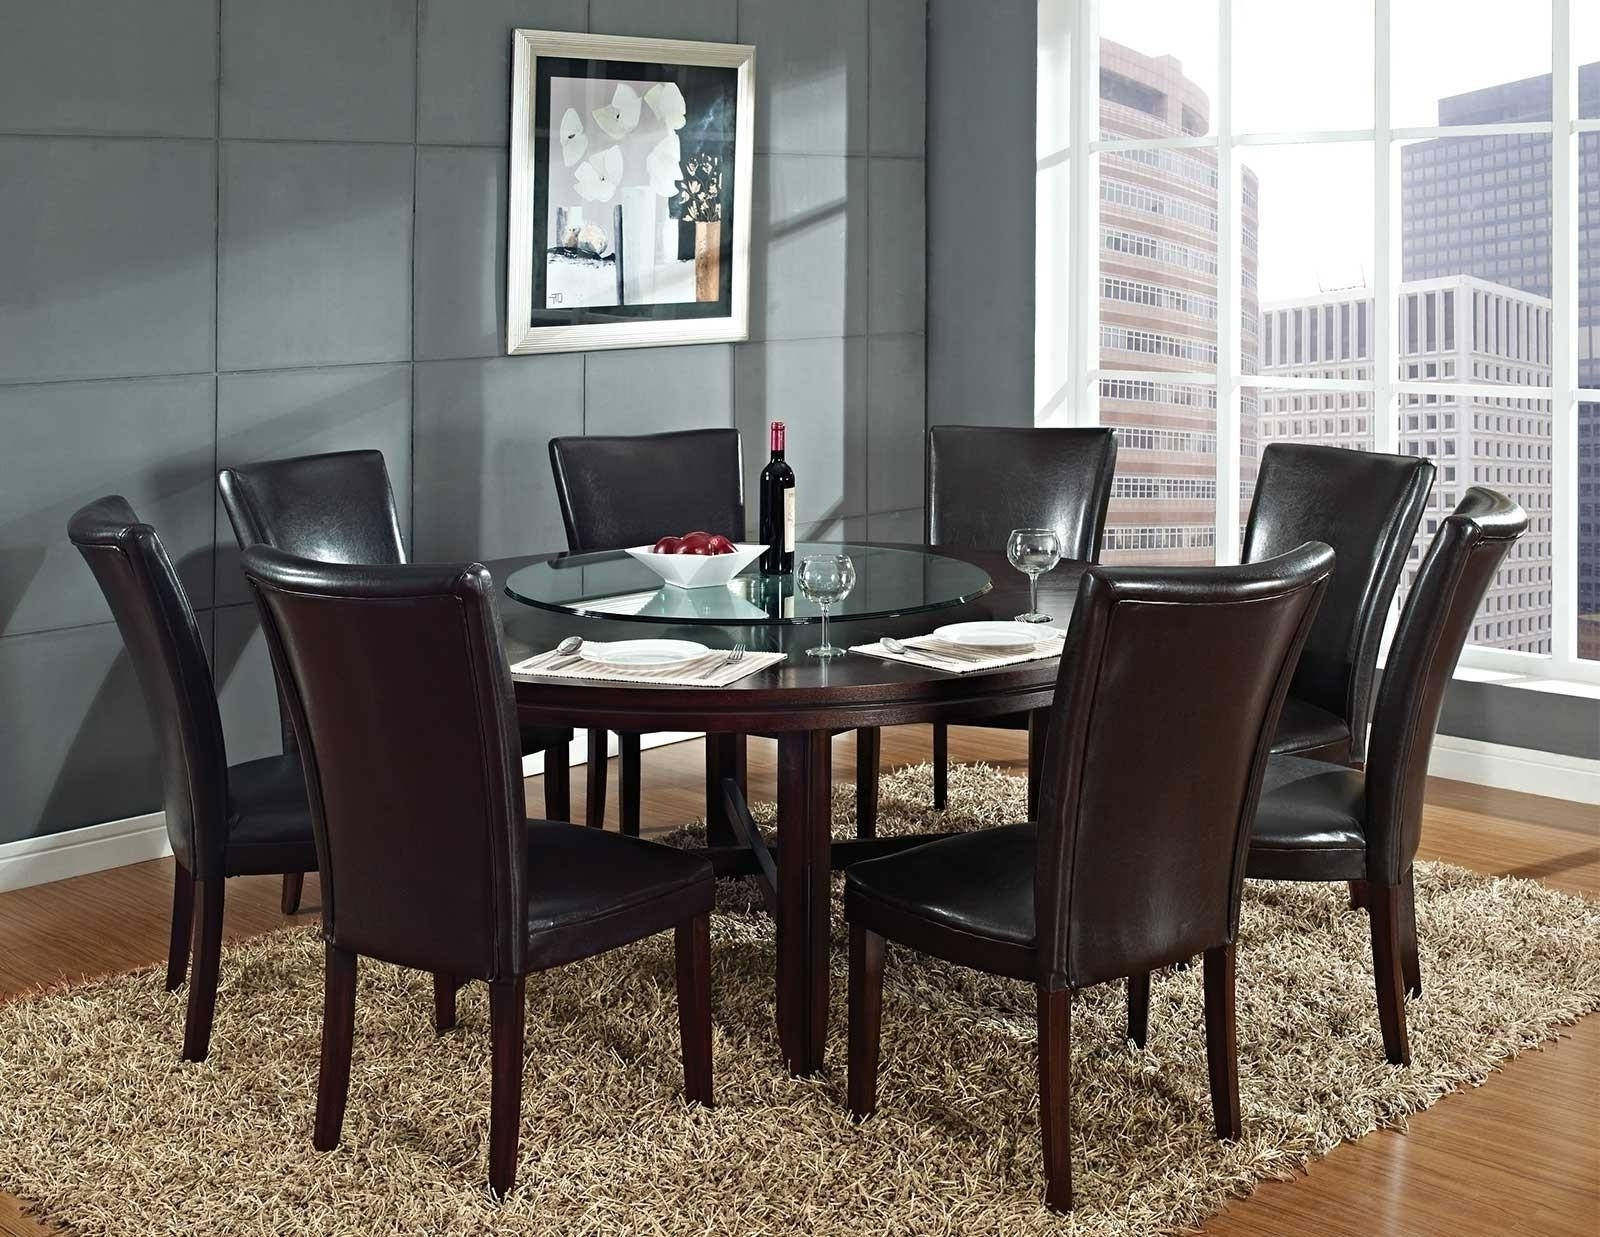 Widely Used Caira Black Round Dining Tables Inside Large Pedestal Dining Table Unique Round Dining Table Unique Awesome (View 24 of 25)